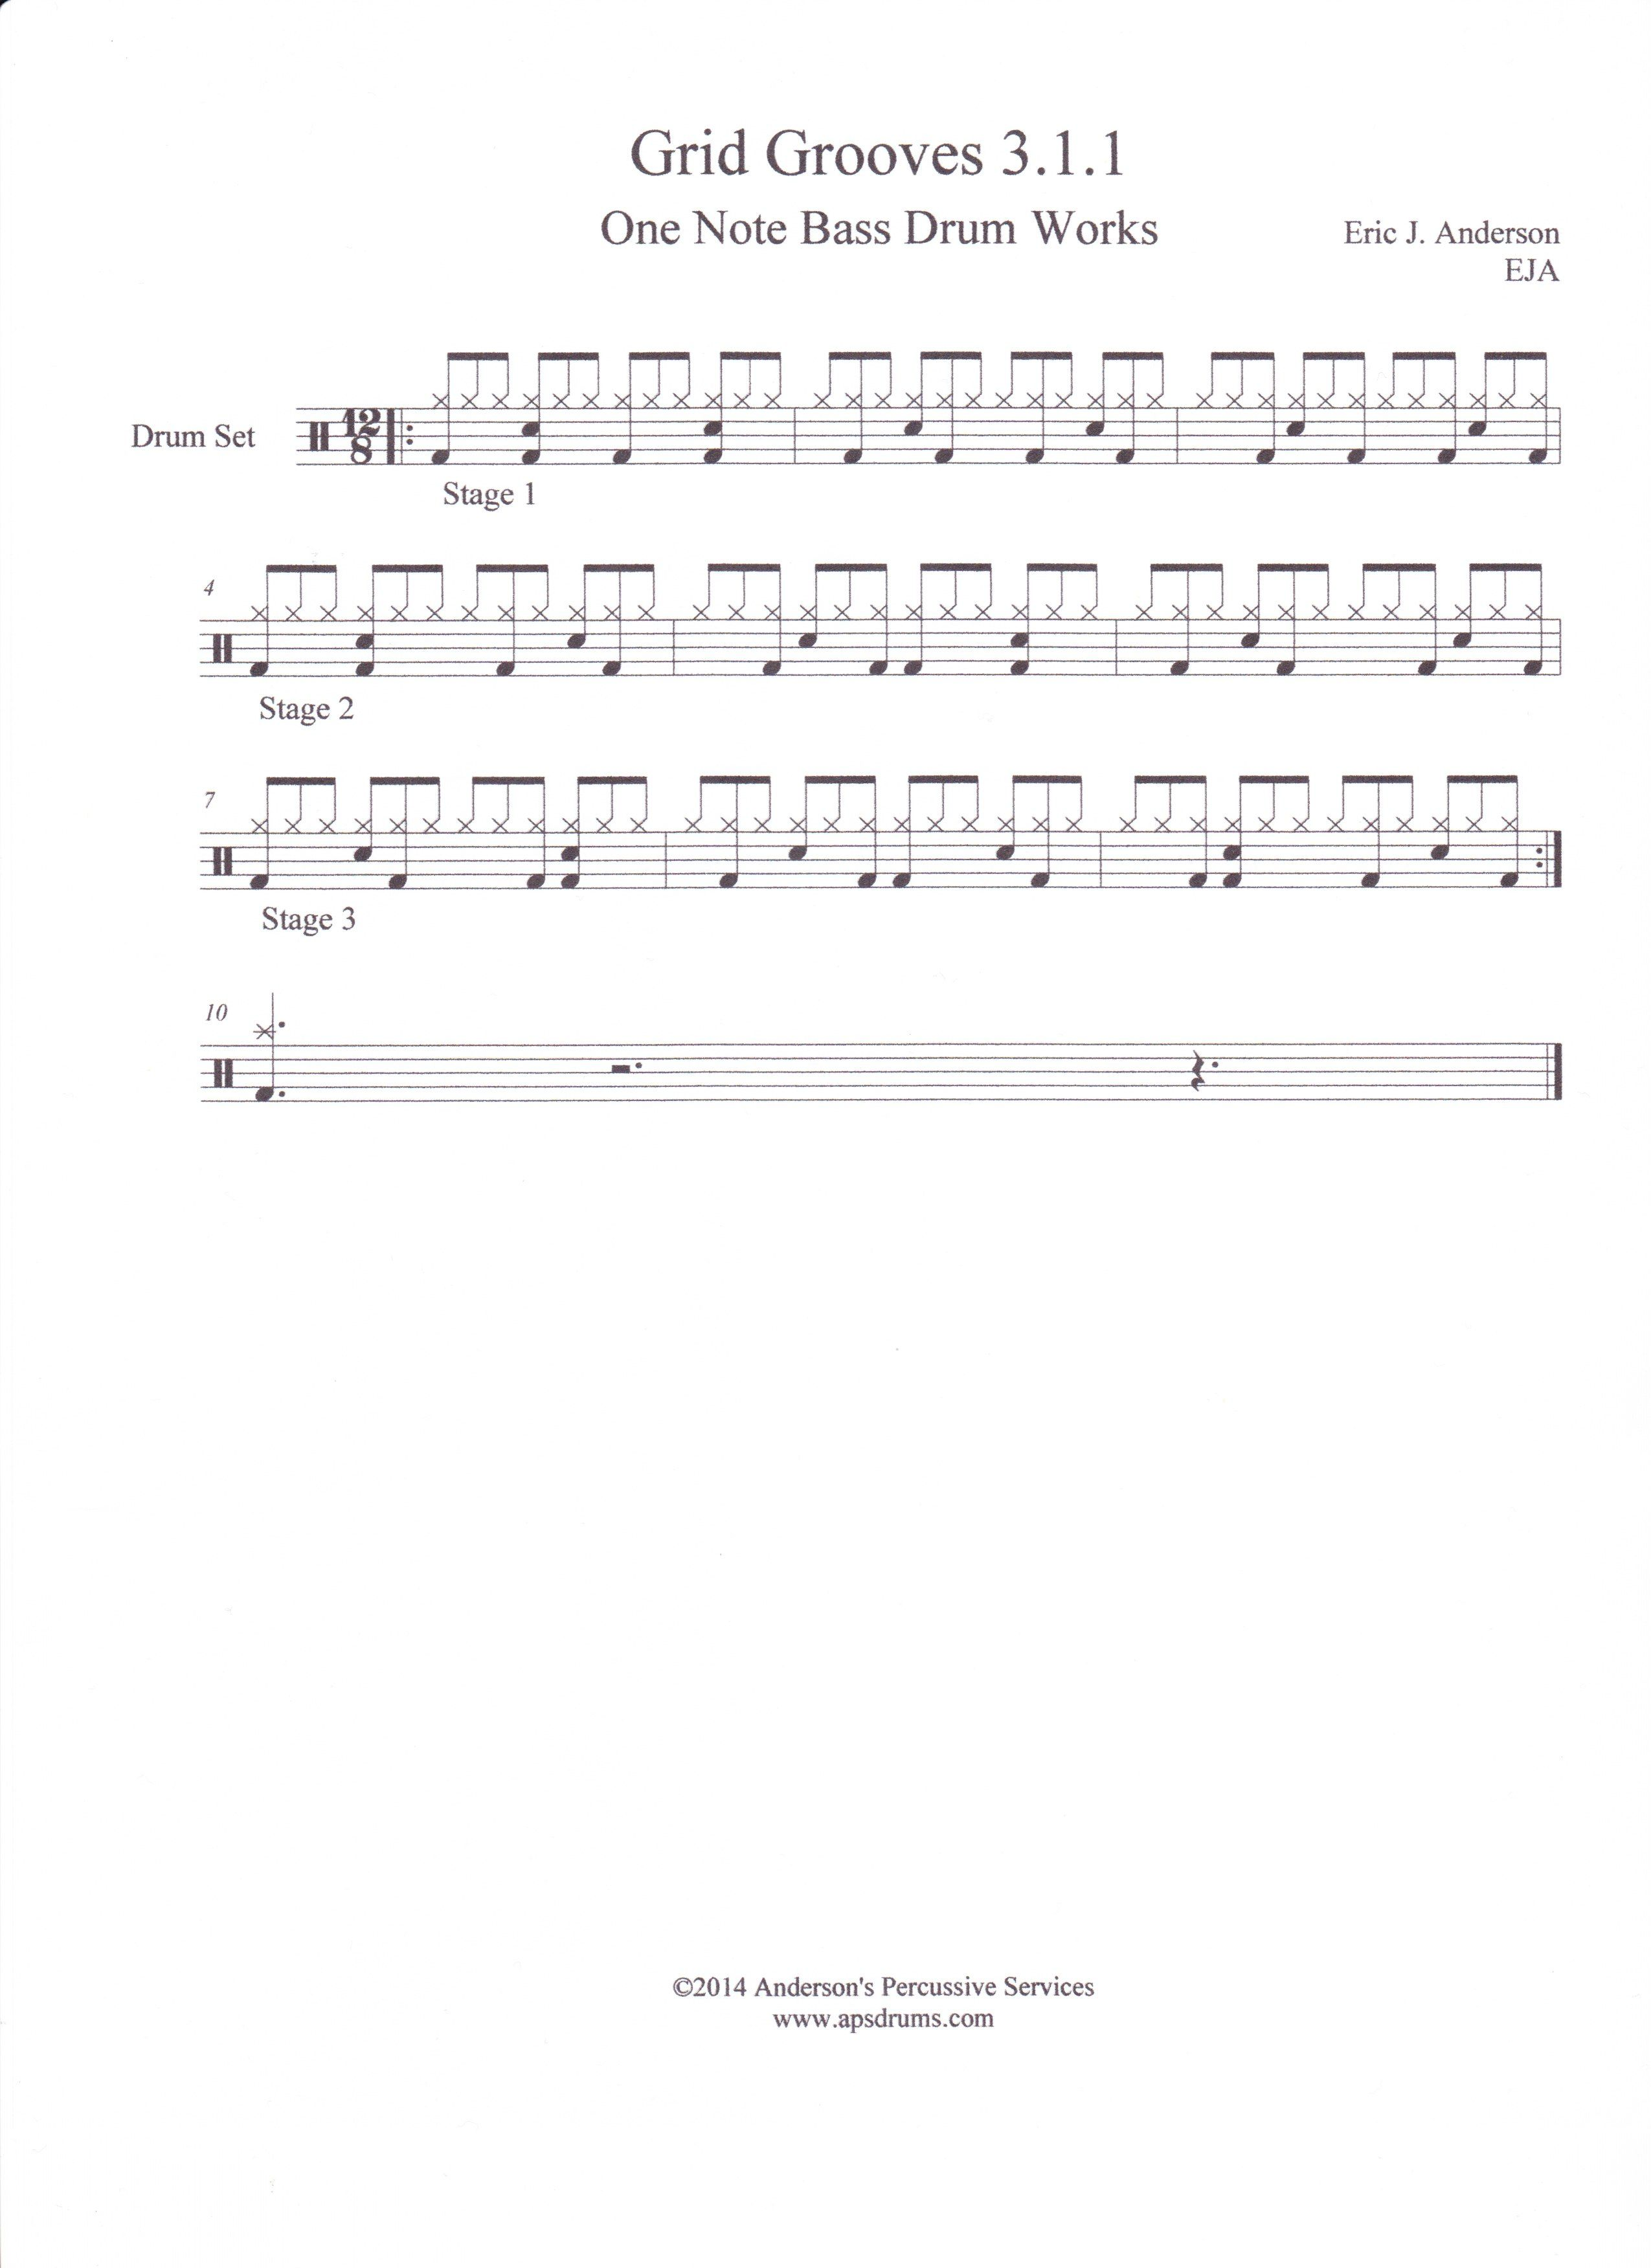 Basic Grid Groove with a 6/8 feel.  It is written in 12/8 to facilitate the 4-2-1 Grid concept